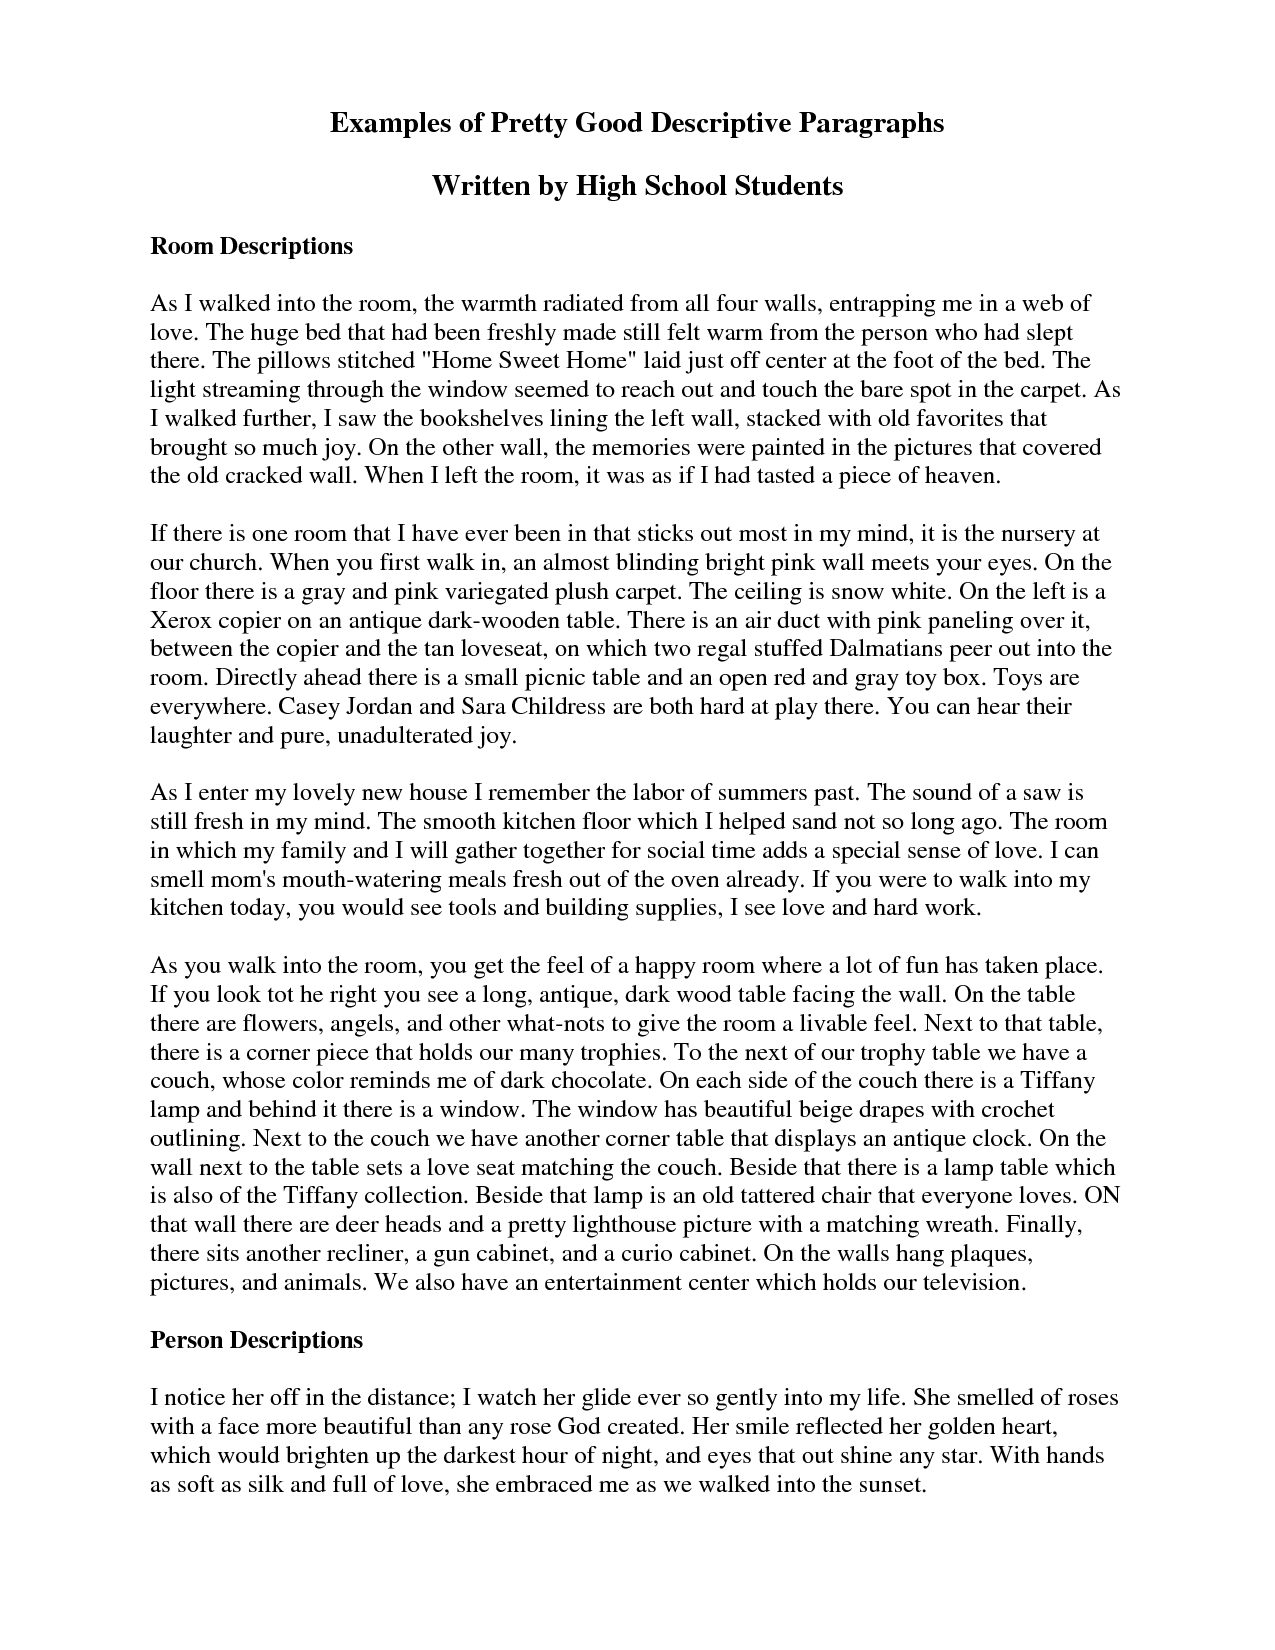 Descriptive Essay Help What Is A Descriptive Essay